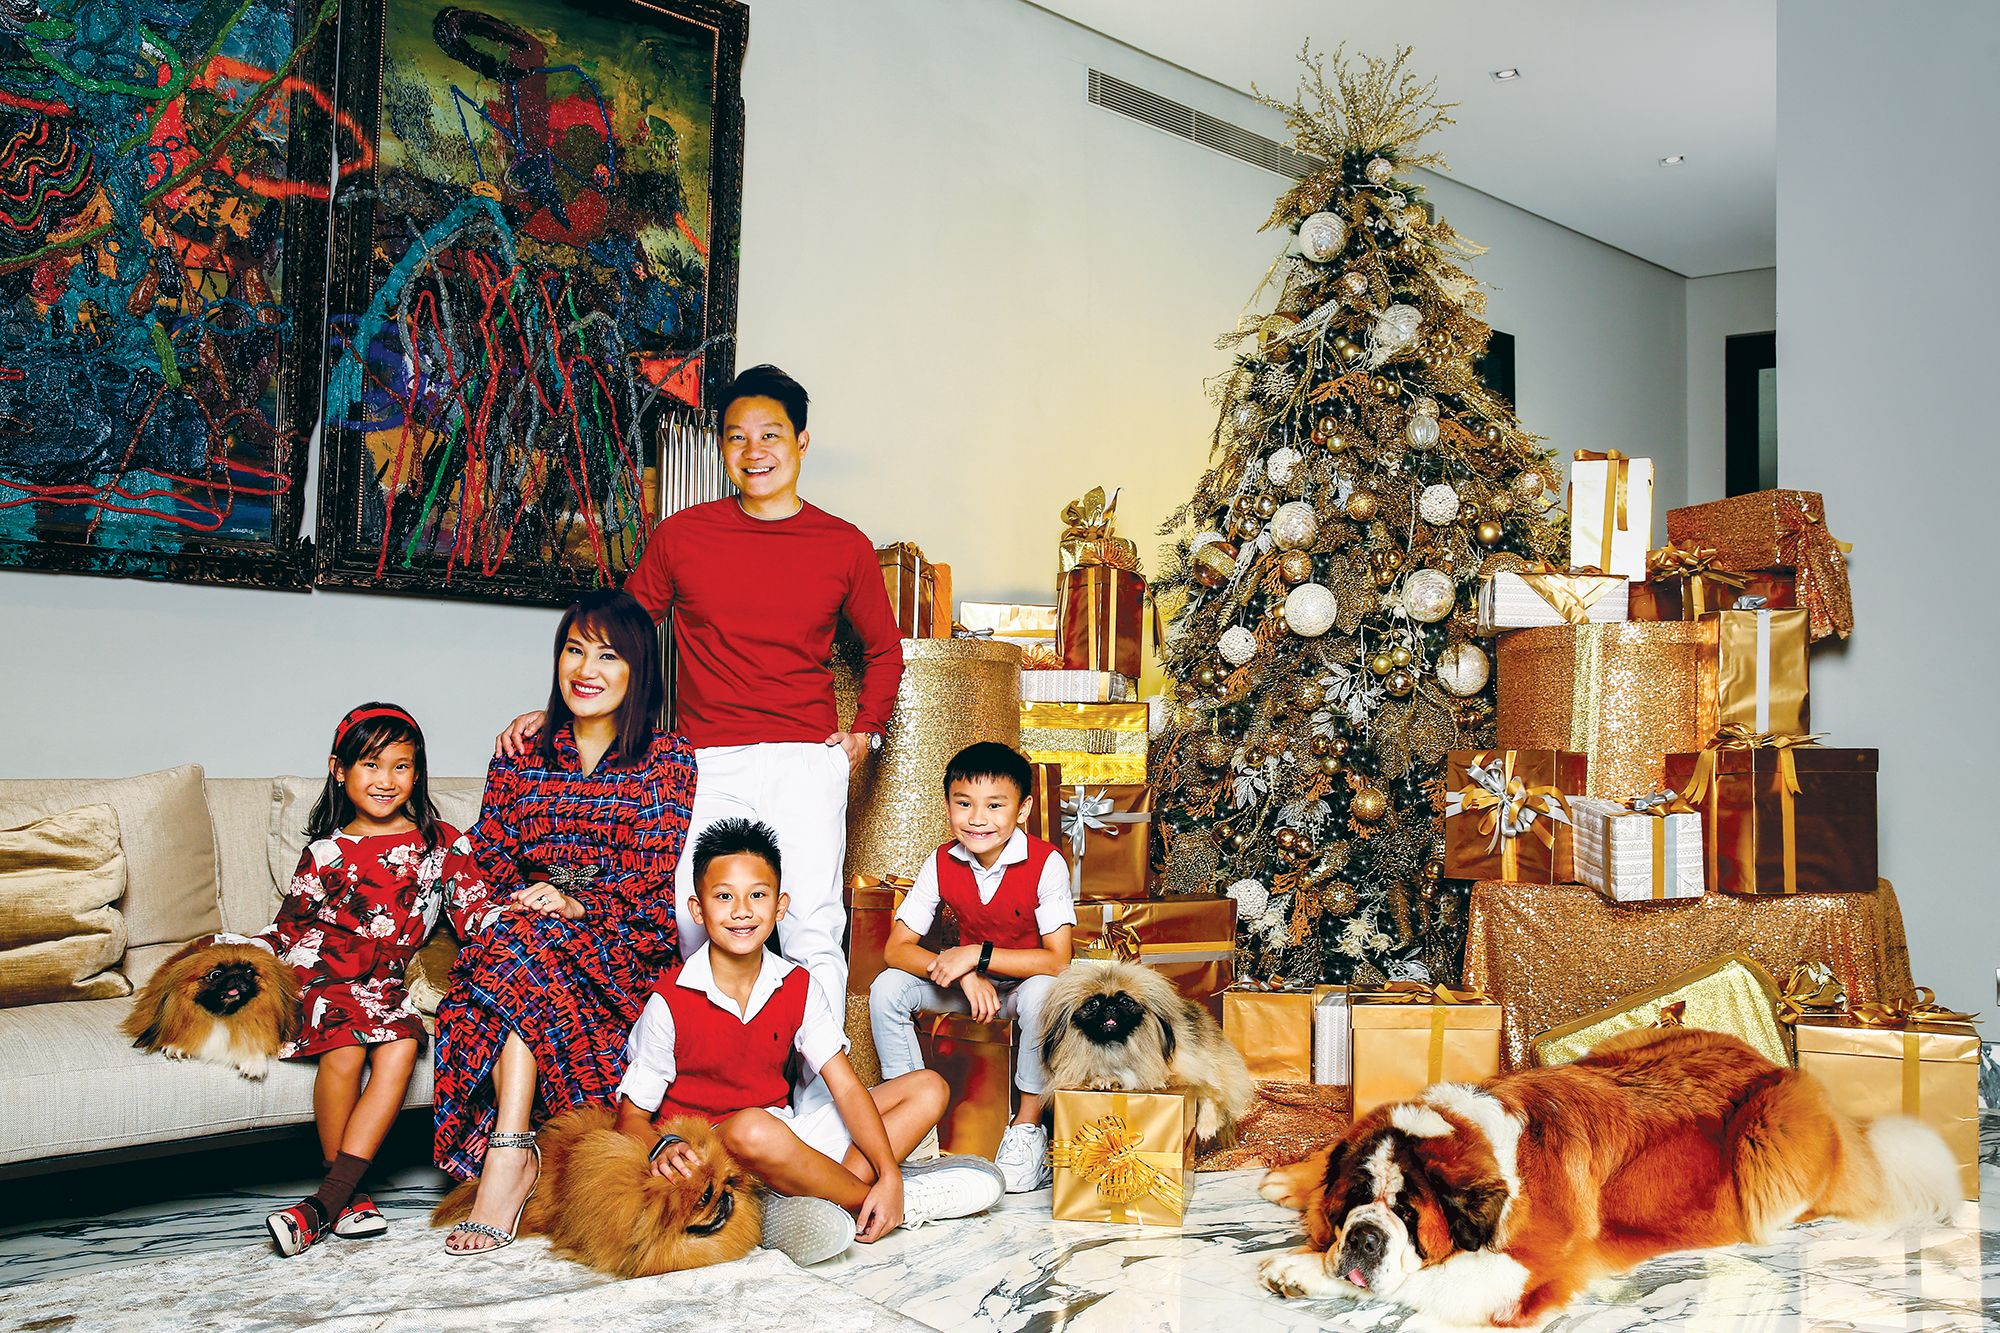 Teos, Prietos, and Huangs Share Their Christmas Traditions and Wishes This 2019